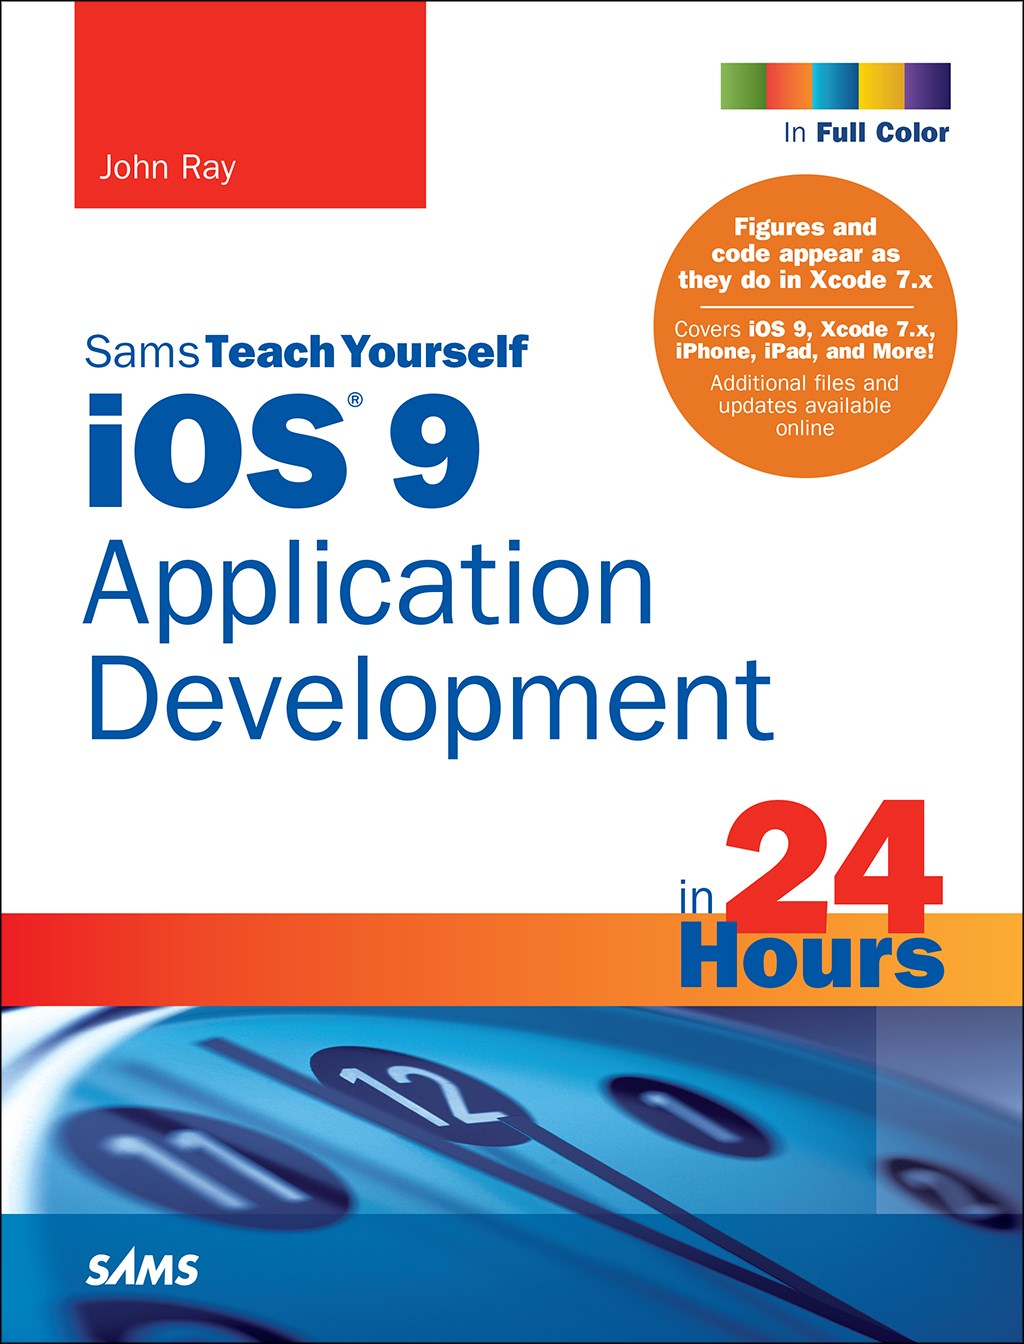 iOS 9 Application Development in 24 Hours, Sams Teach Yourself, 7th Edition